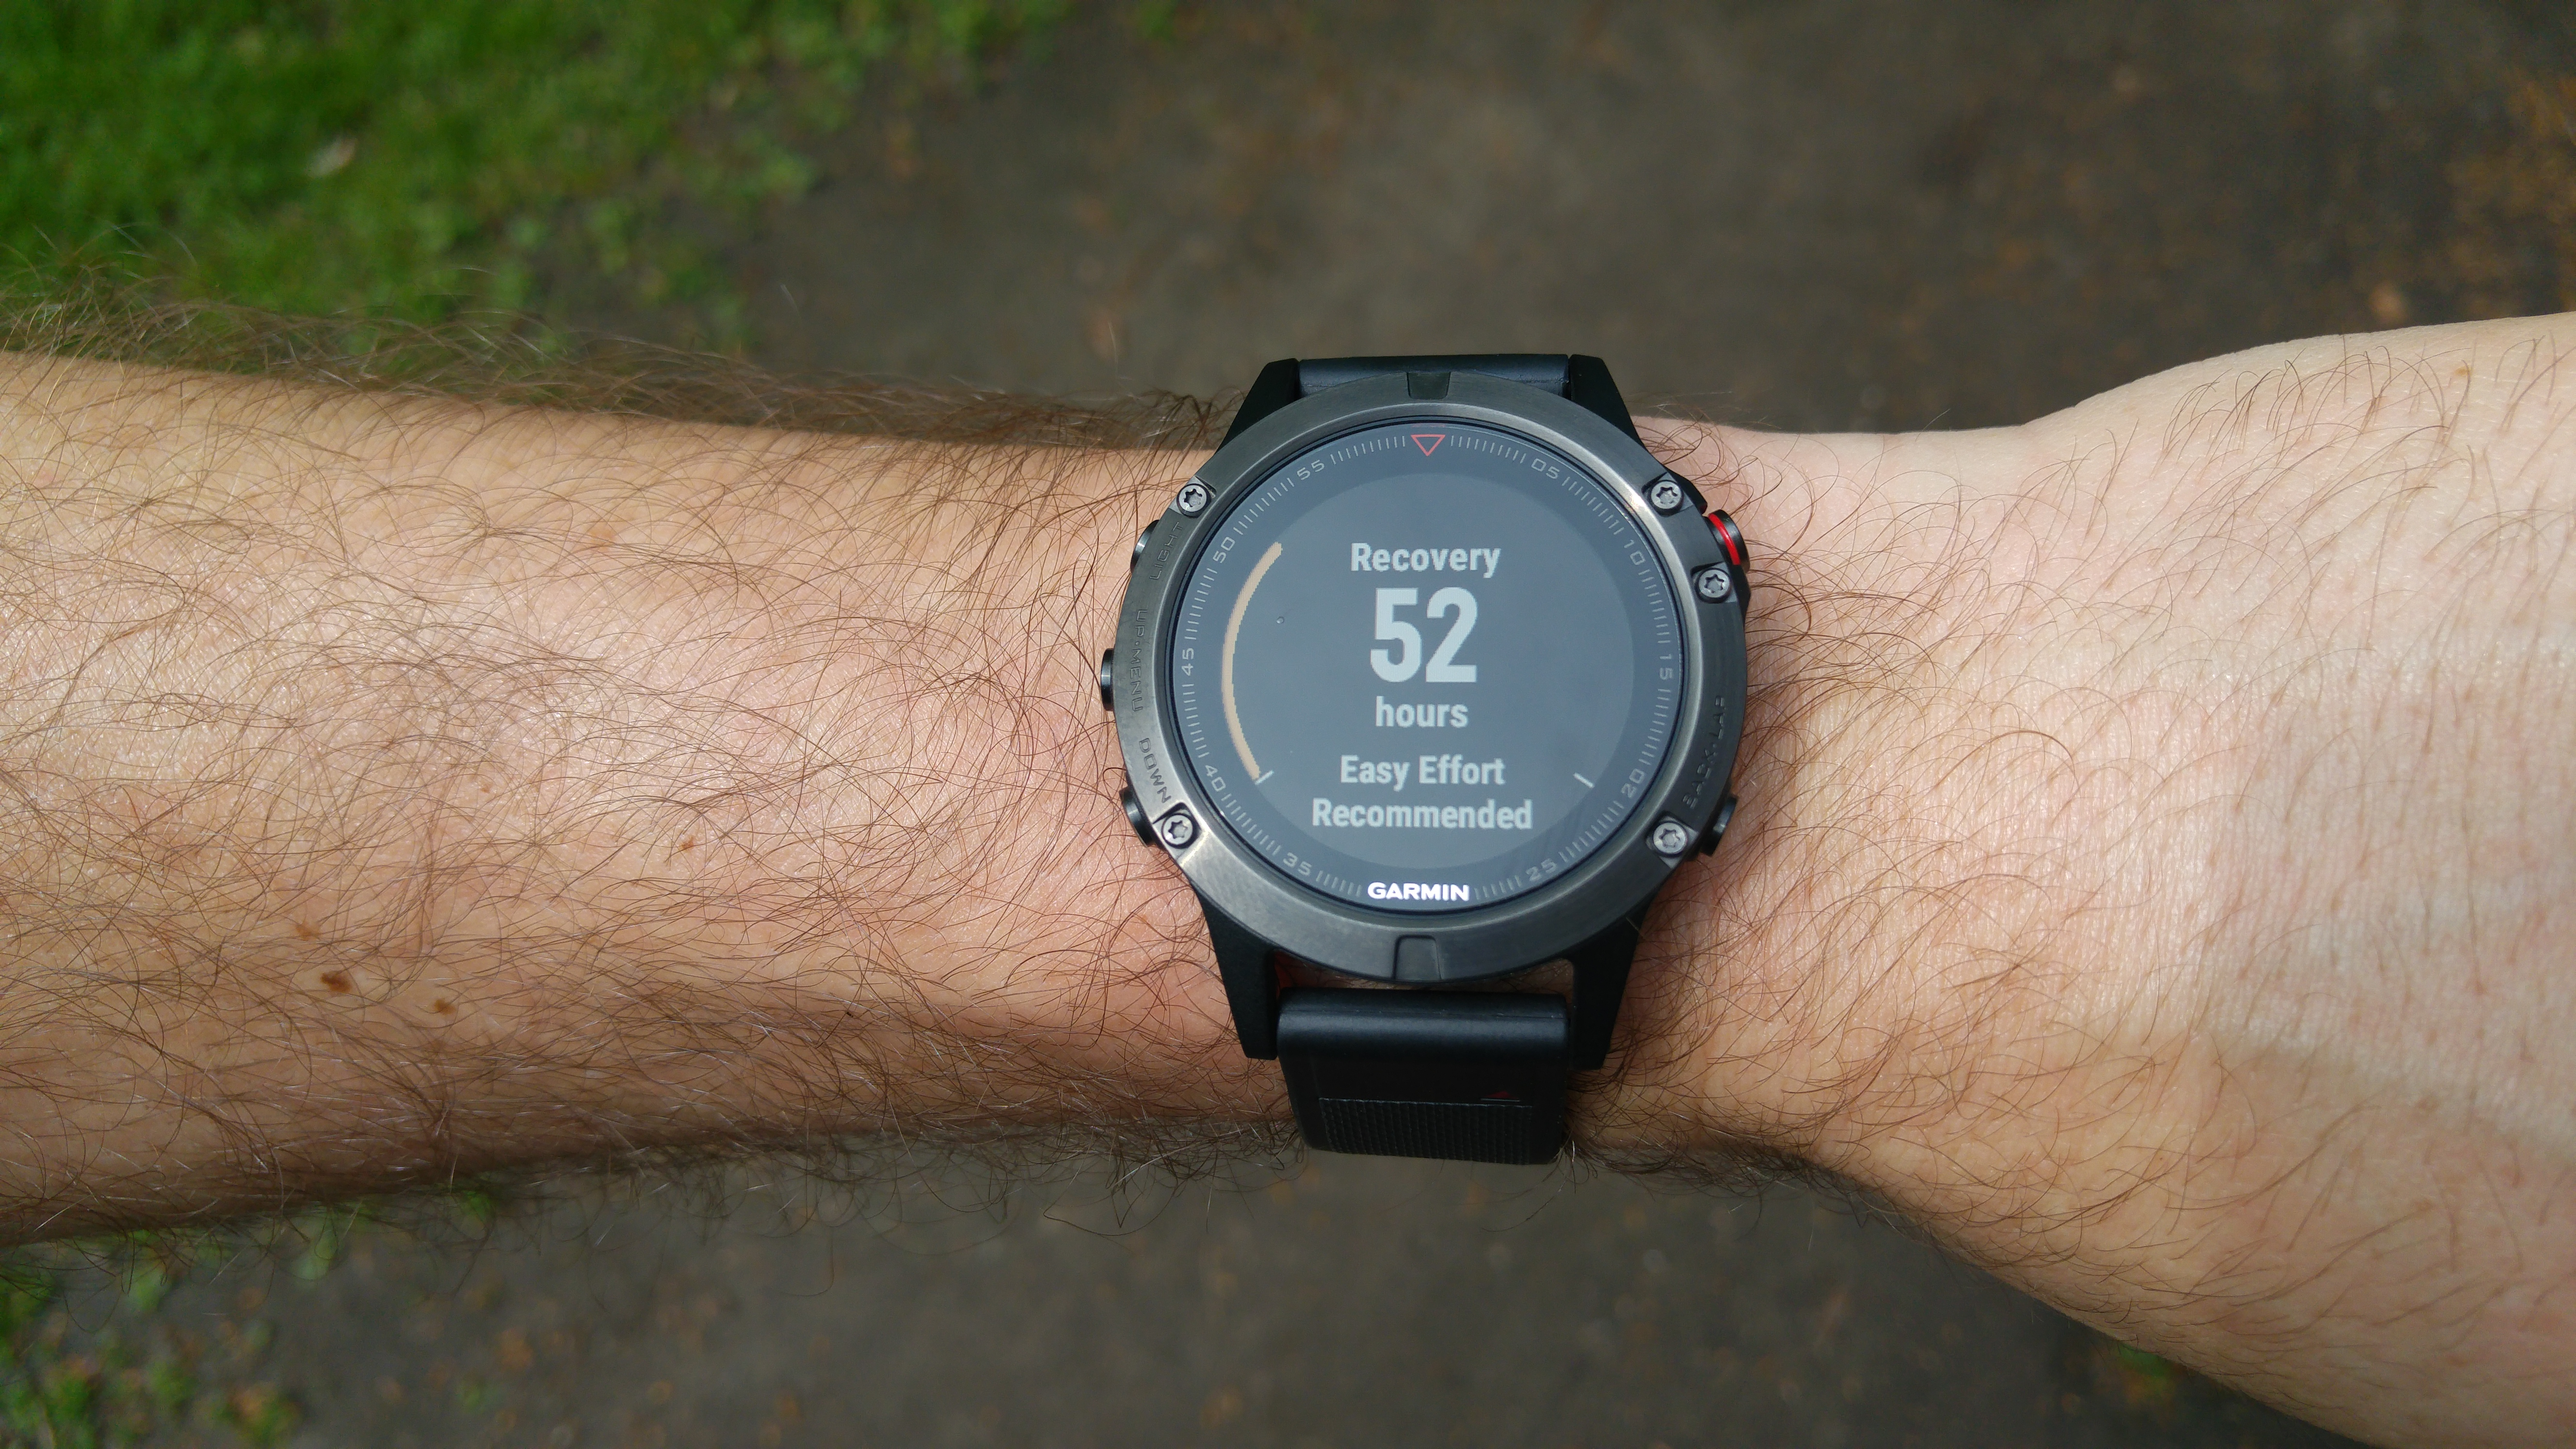 Review Garmin Fenix 5 - Accuracy and Application - Fitness Gadgets